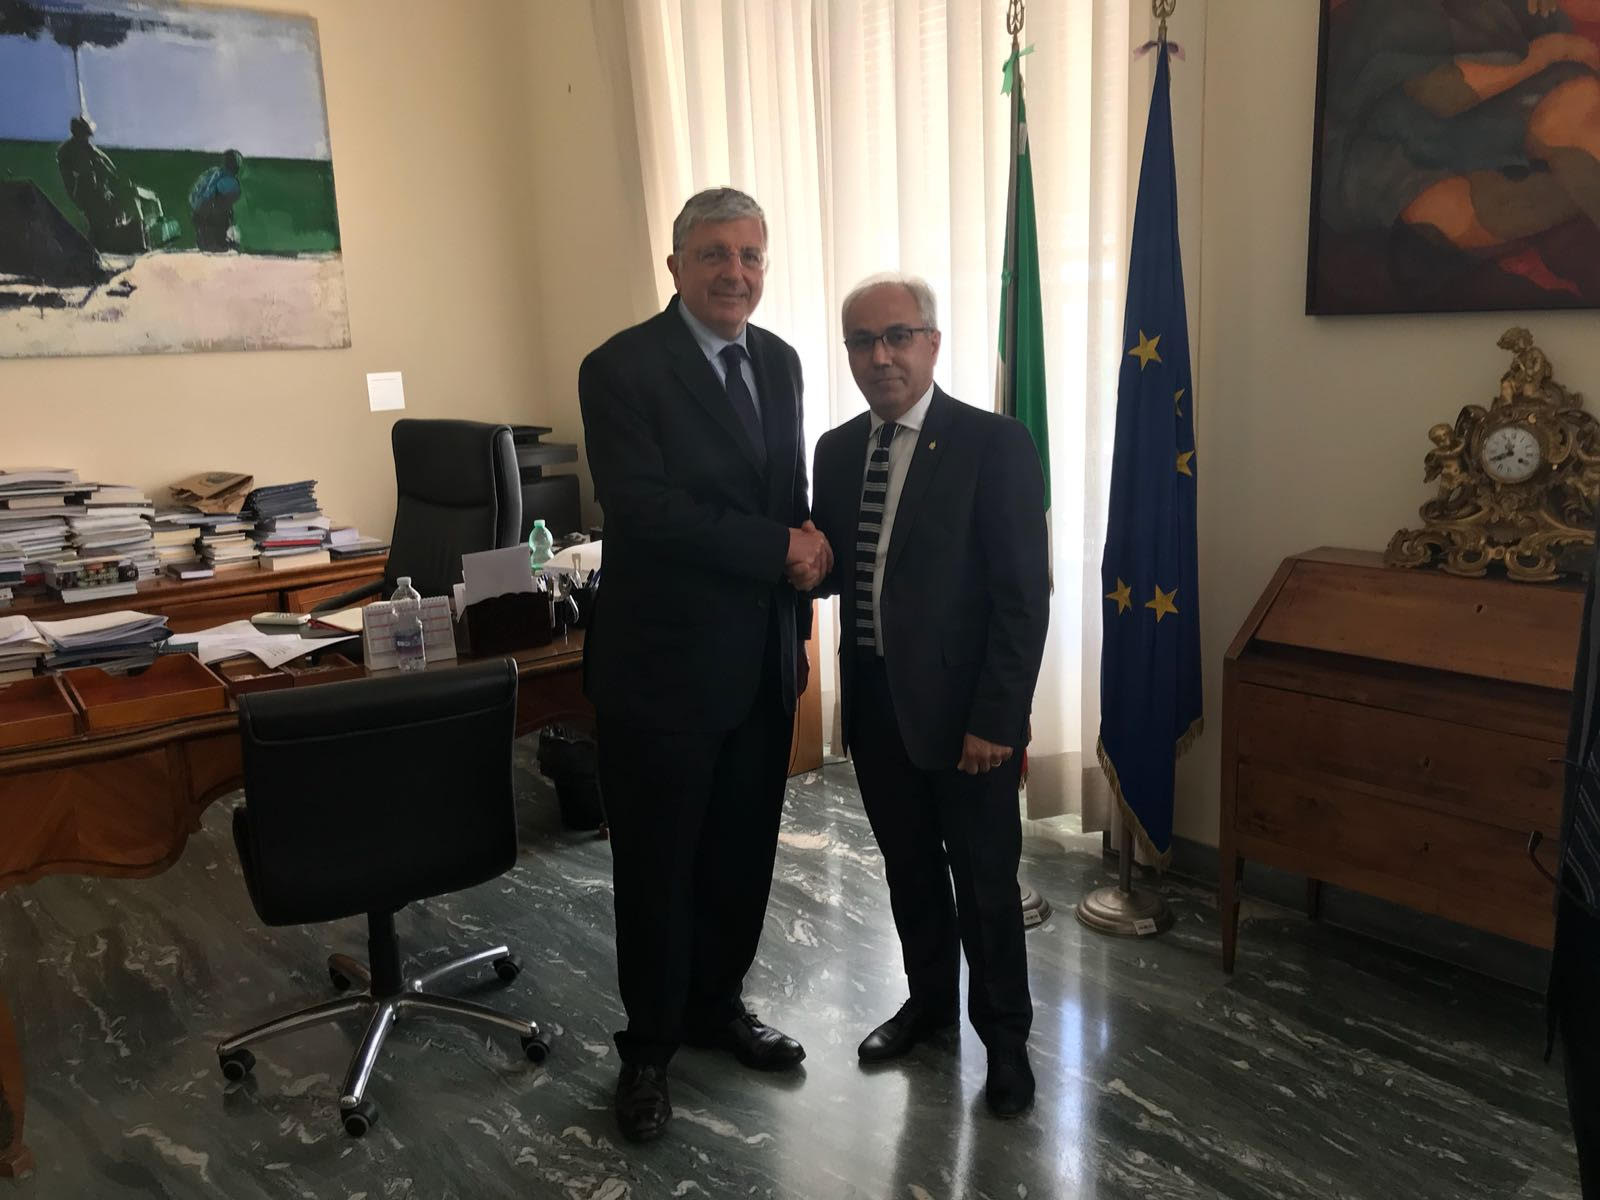 Immagine Meeting in Rome between Unioncamere del Veneto President Mario Pozza and the Farnesina Director General for the Countrywide System promotion Vincenzo De Luca